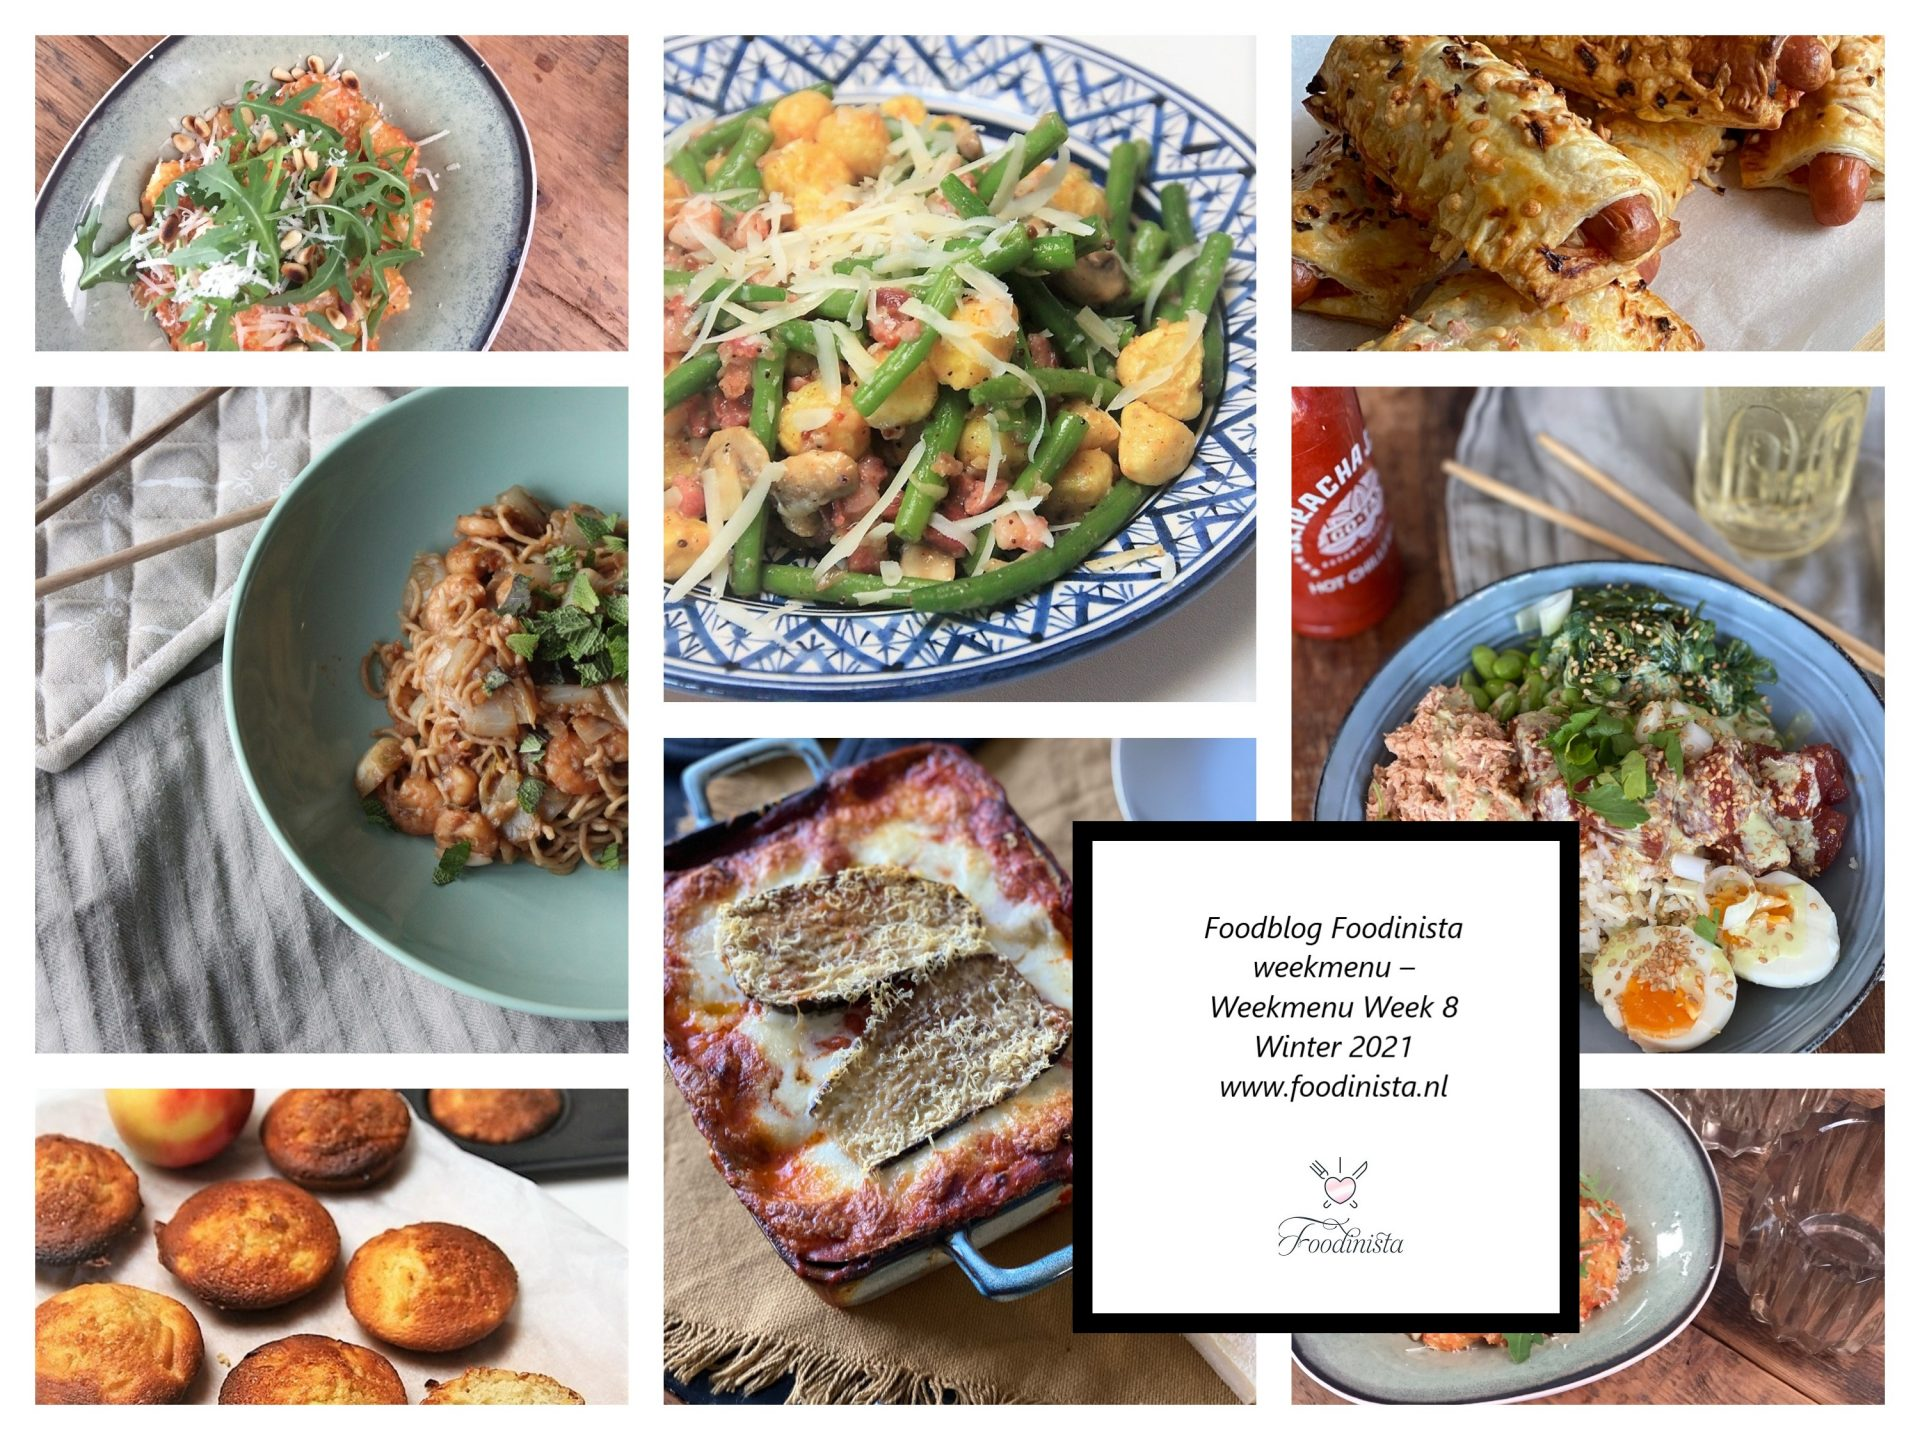 Foodblog Foodinista weekmenu – Wat eten we deze week? – Weekmenu Week 8 Winter 2021